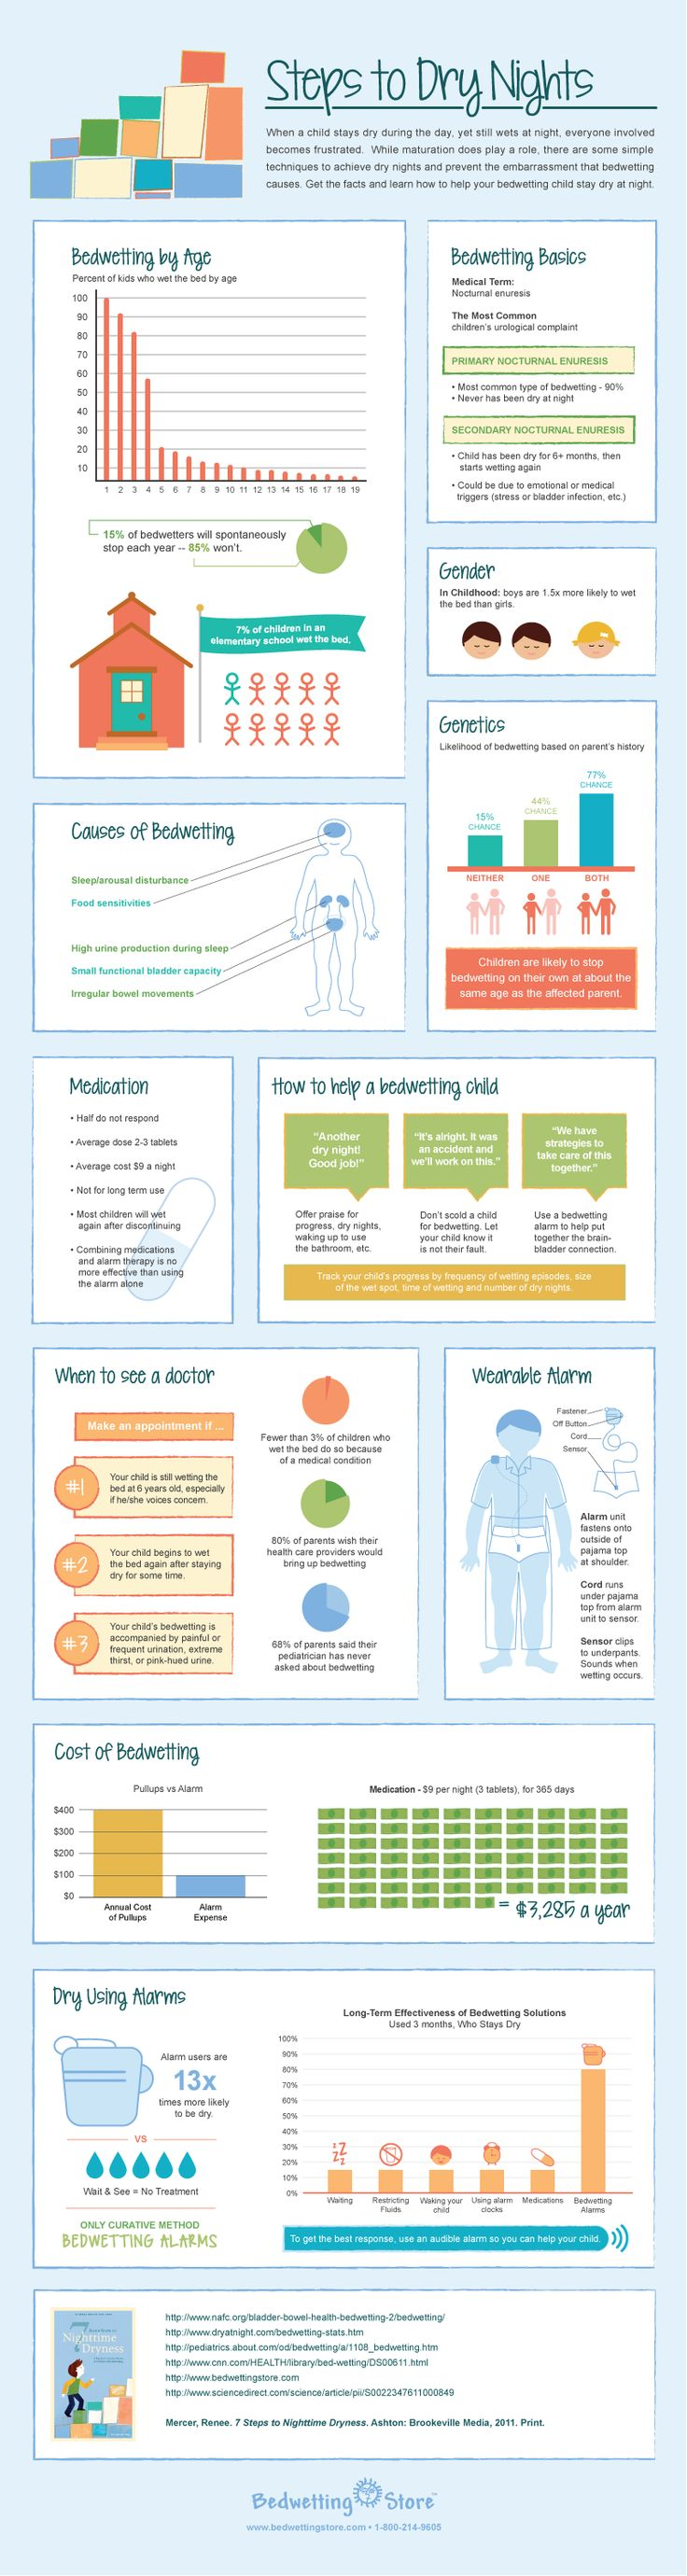 34 best potty training tips images on pinterest toddler potty steps to dry nights infographic bedwetting store when a child stays dry during the xflitez Choice Image